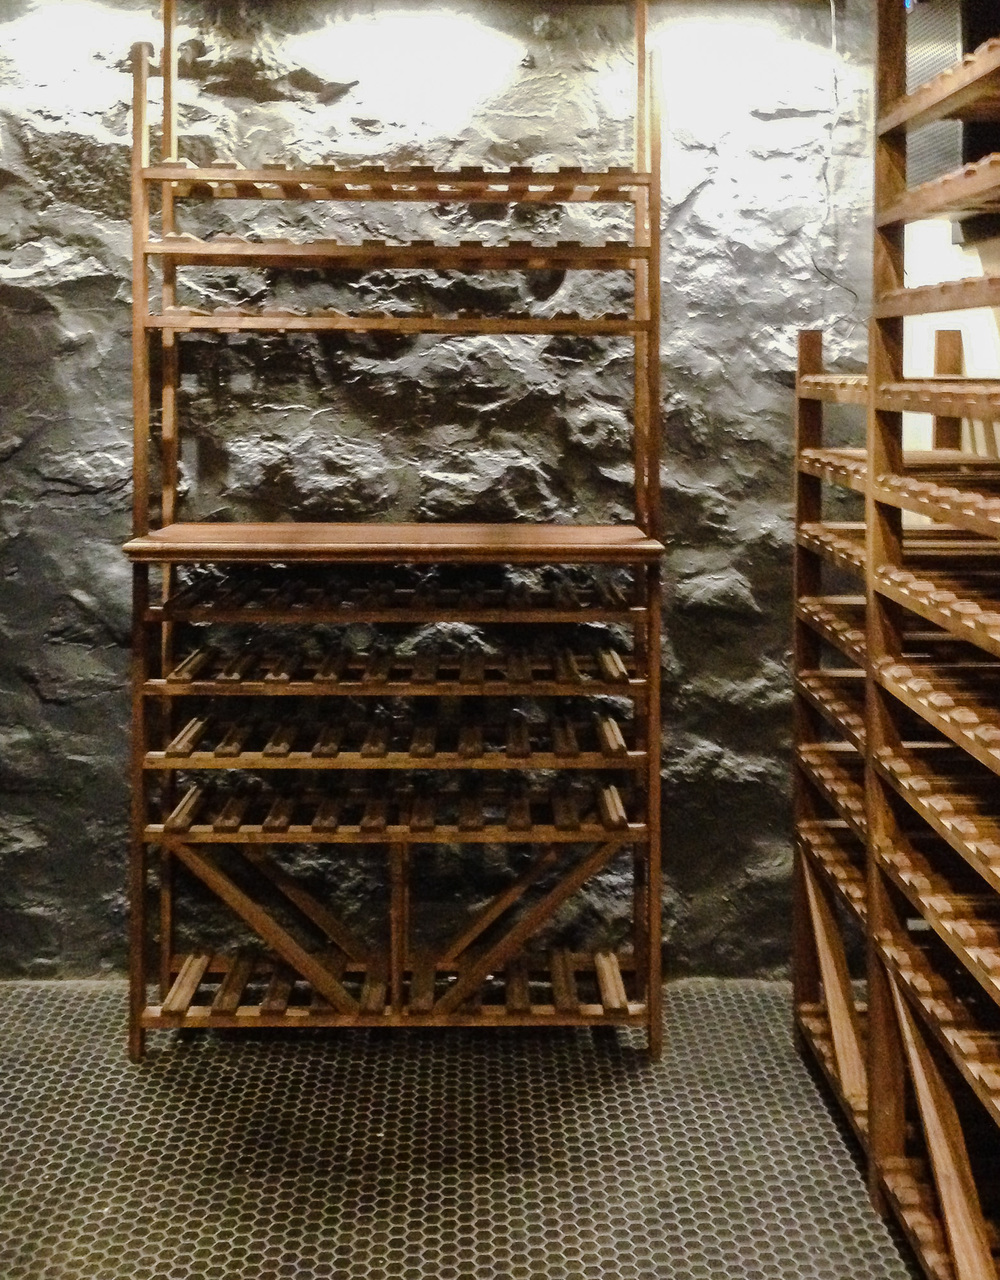 Wine Cellar Rack & Wall Detail